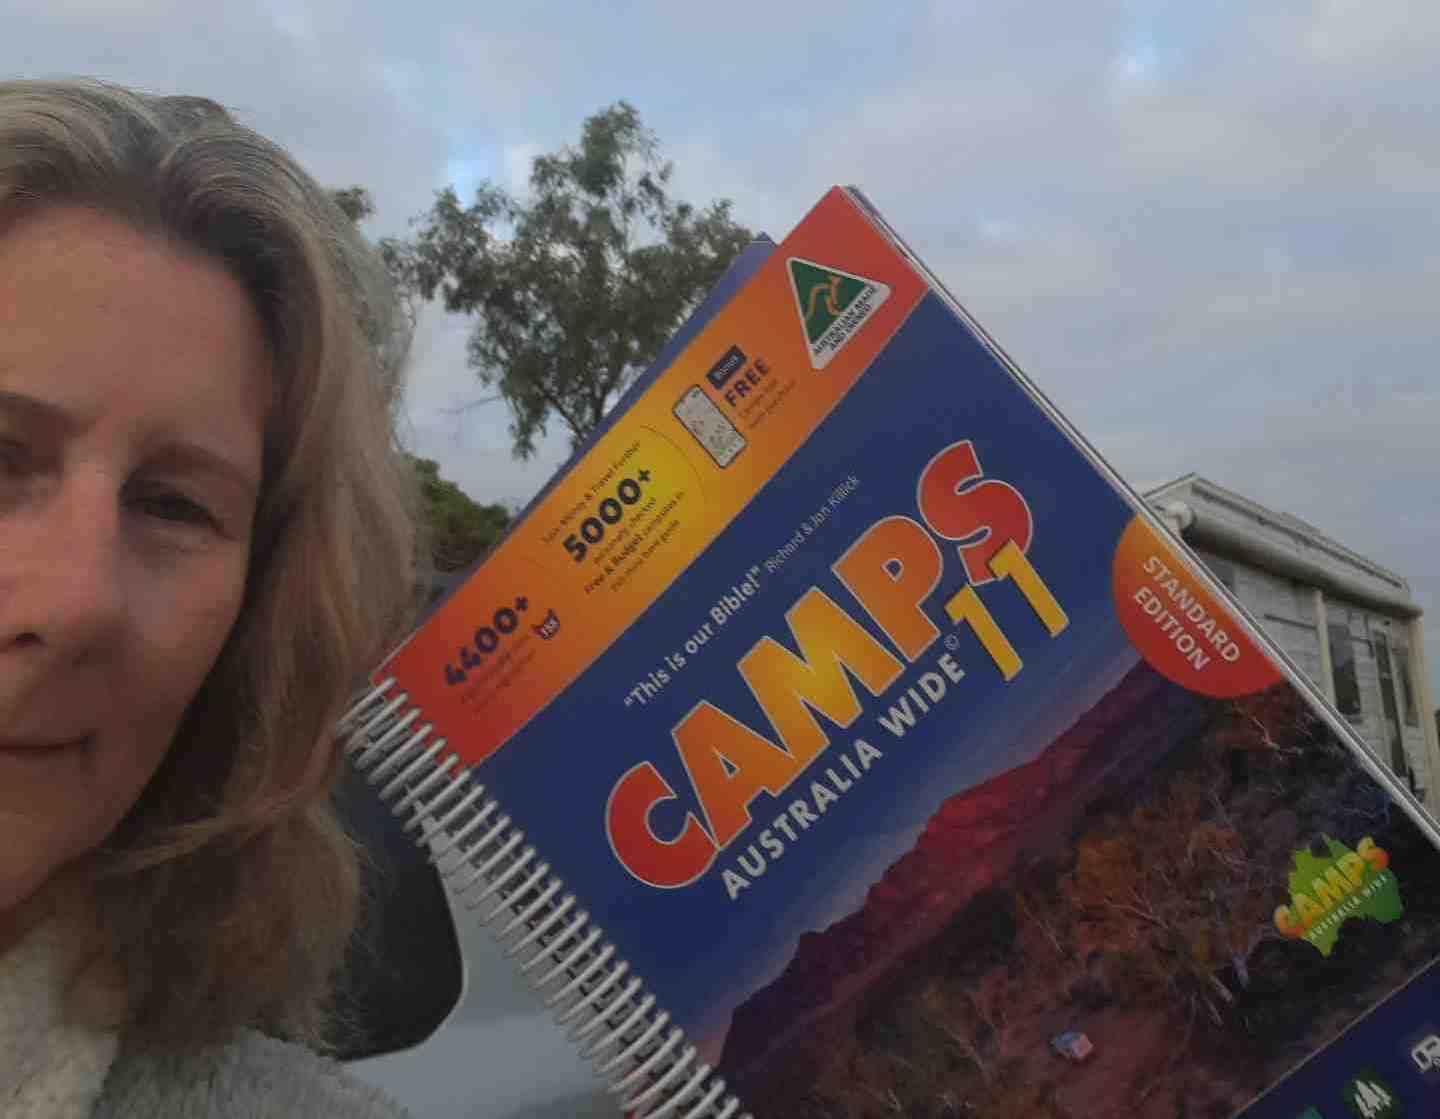 Kaz Nagle with her Camps 11 Book